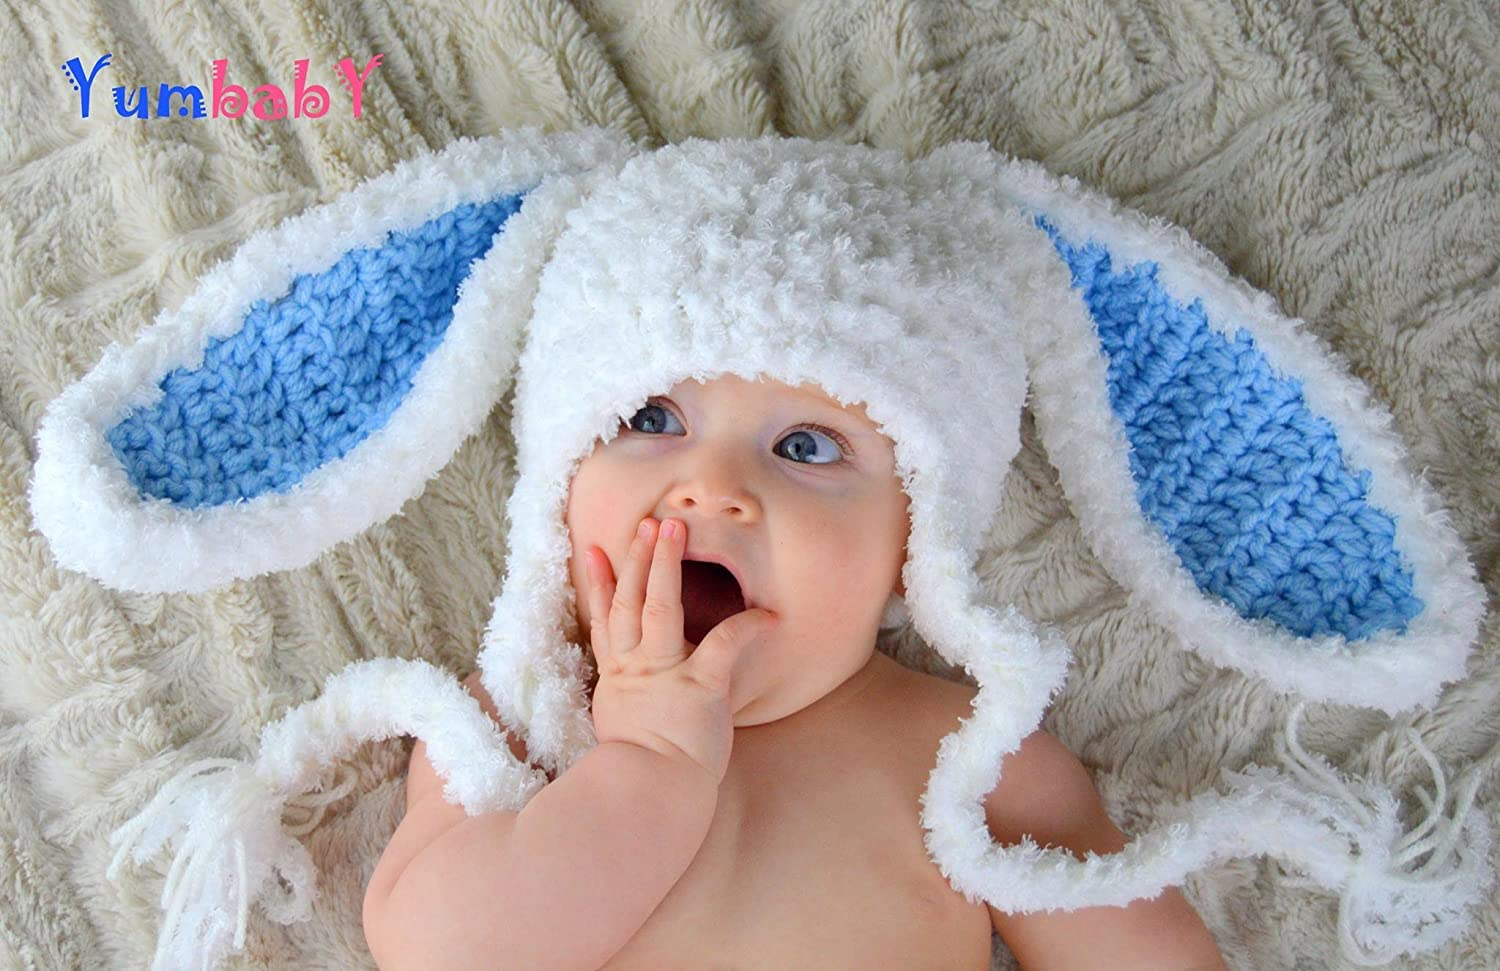 Bunny Hat for Easter - Easter clothes for kids Baby Bunny Ears Hats